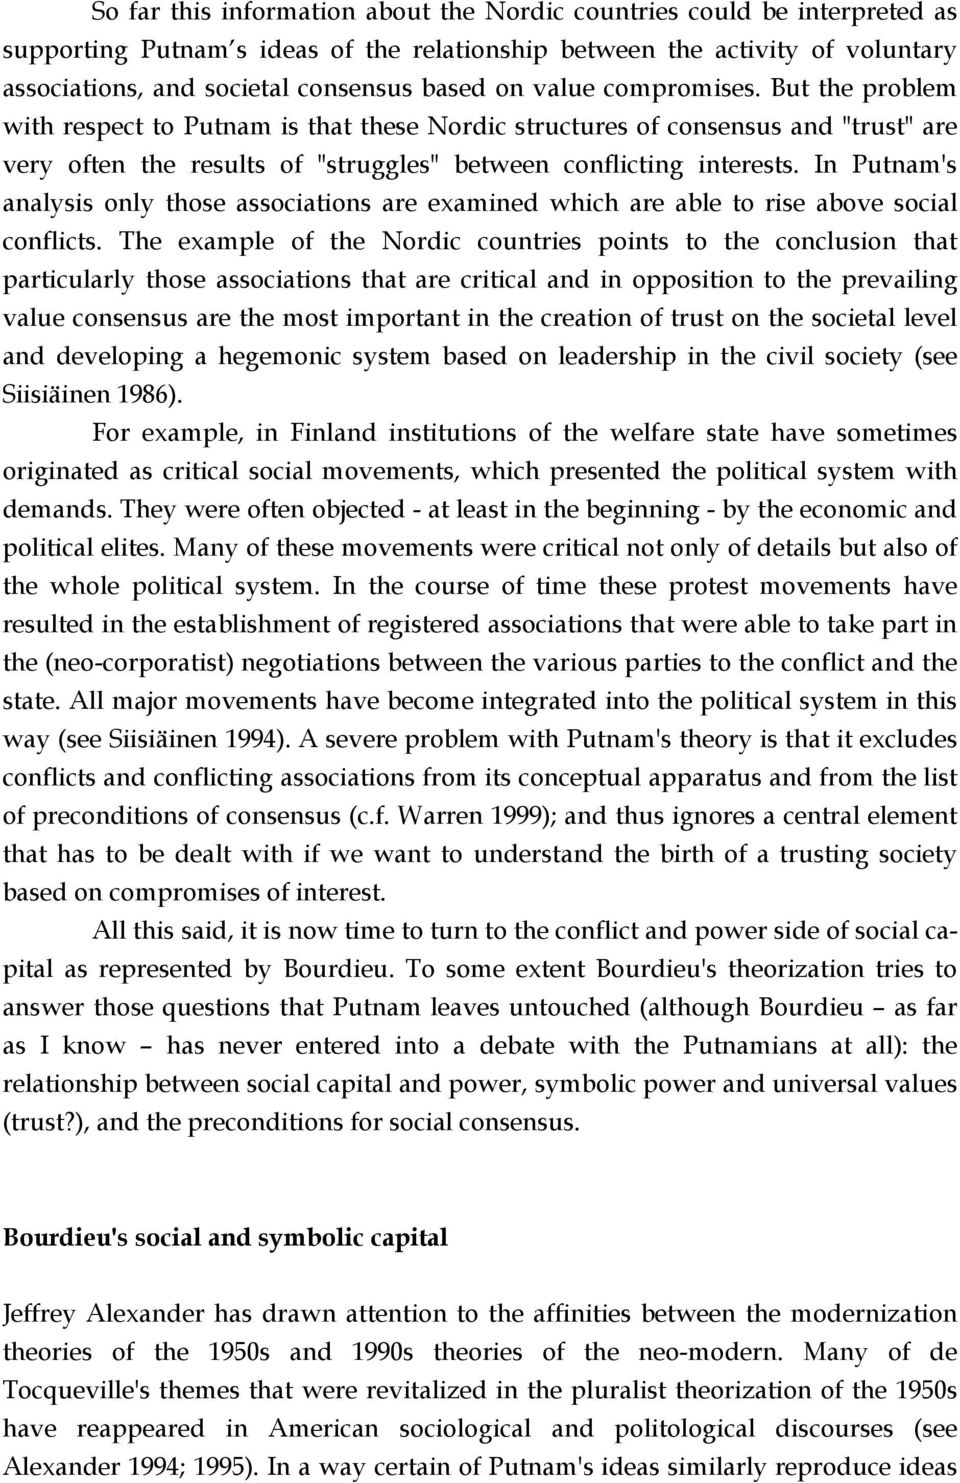 In Putnam's analysis only those associations are examined which are able to rise above social conflicts.